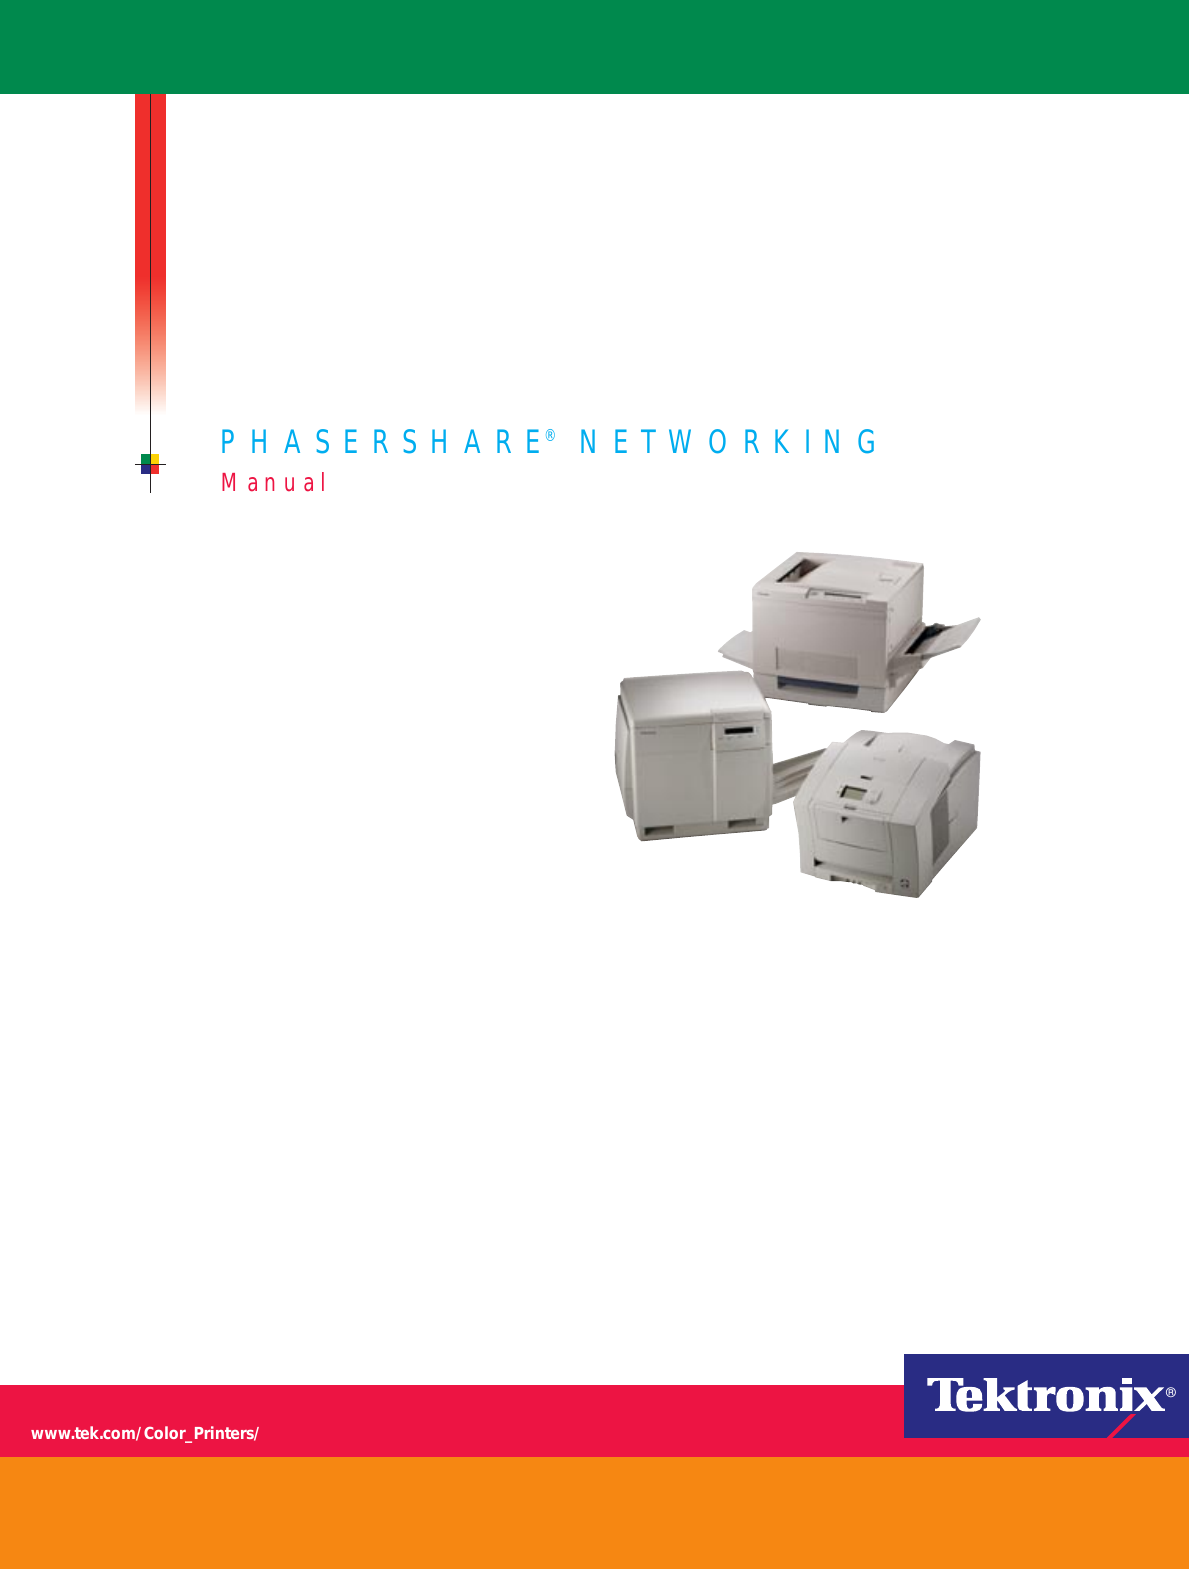 xerox phaser 360 users manual phasershare networking 740 780 840 v3 rh usermanual wiki